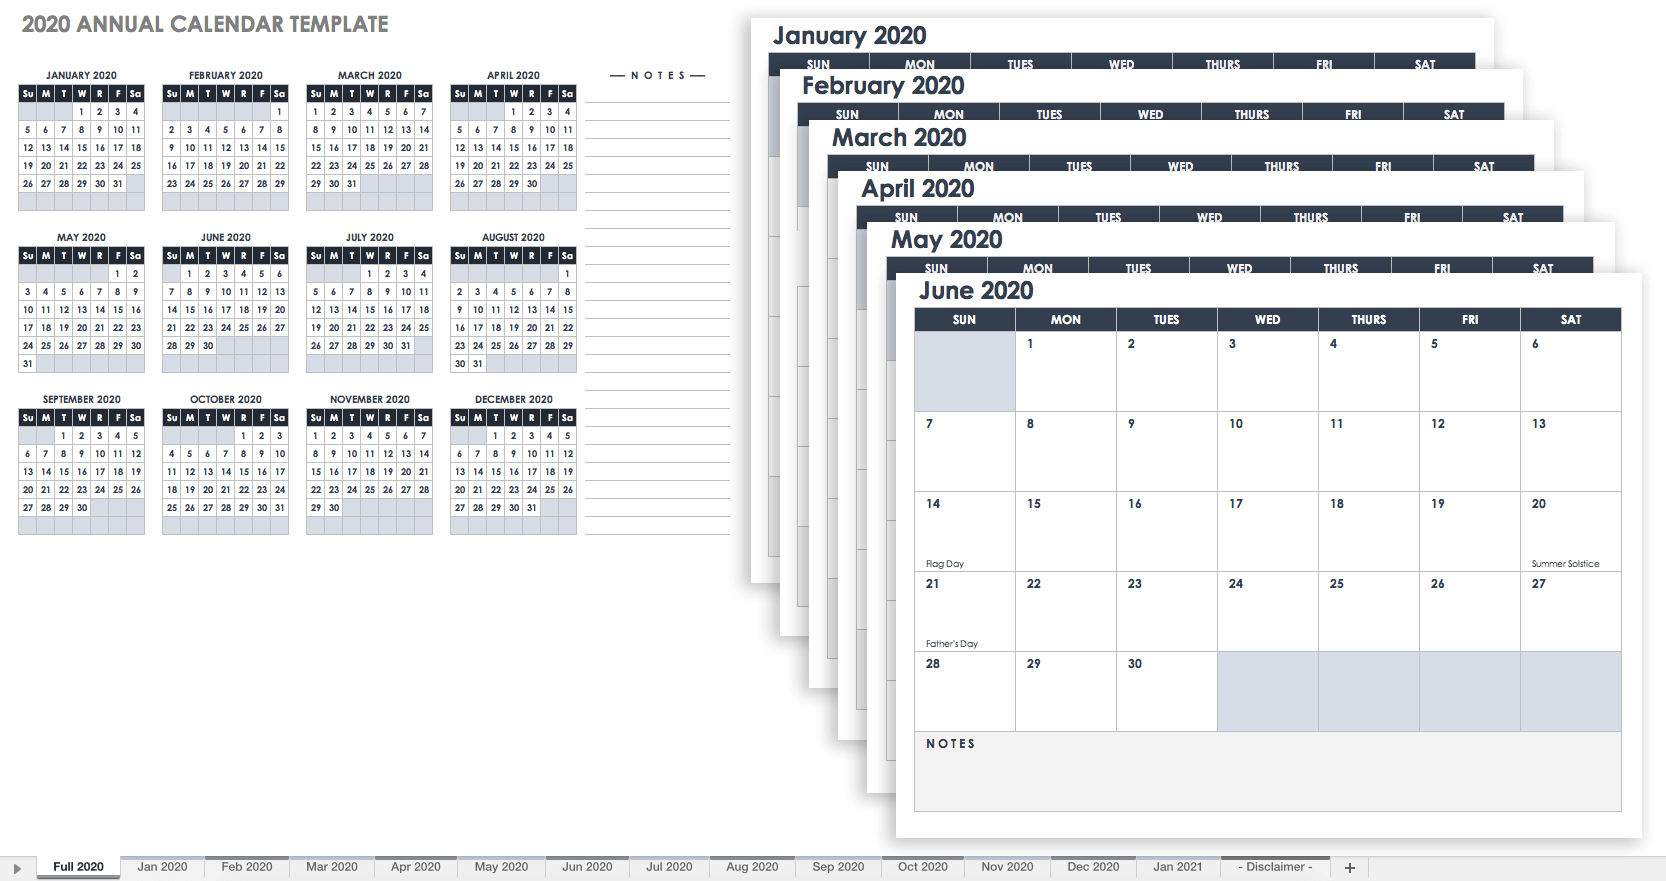 Free, Printable Excel Calendar Templates For 2019 & On | Smartsheet - Free Printable Out Of Service Sign